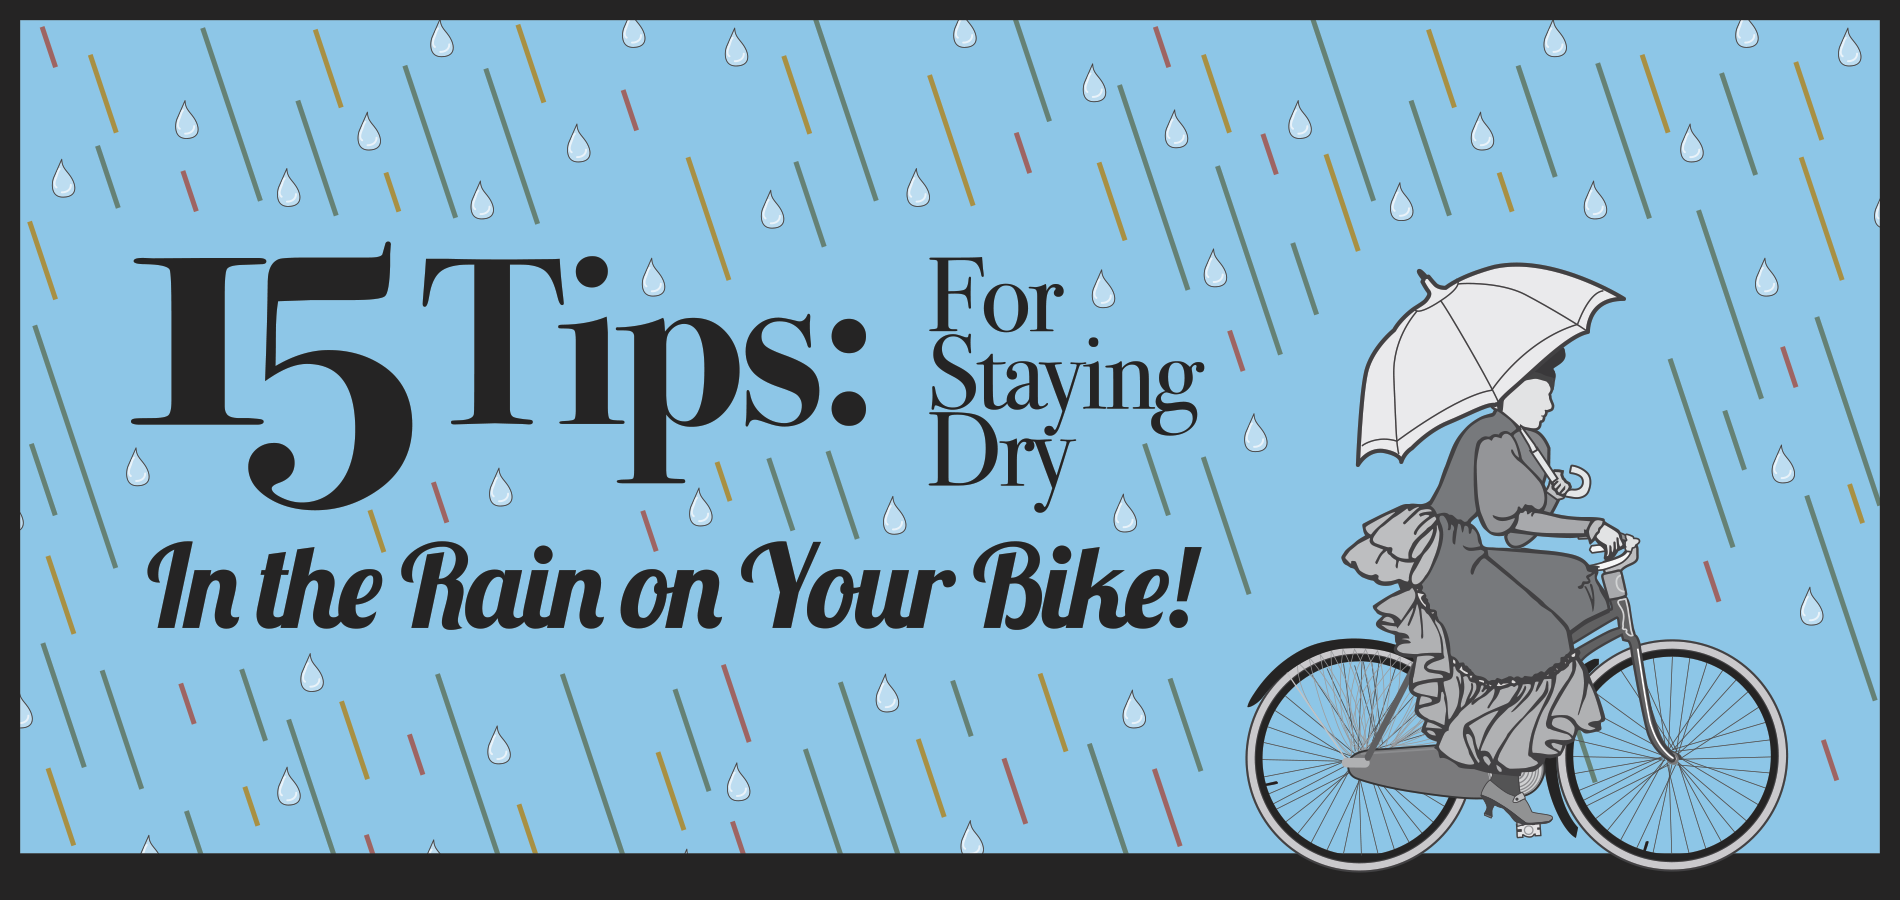 15 tips for cycling in the rain